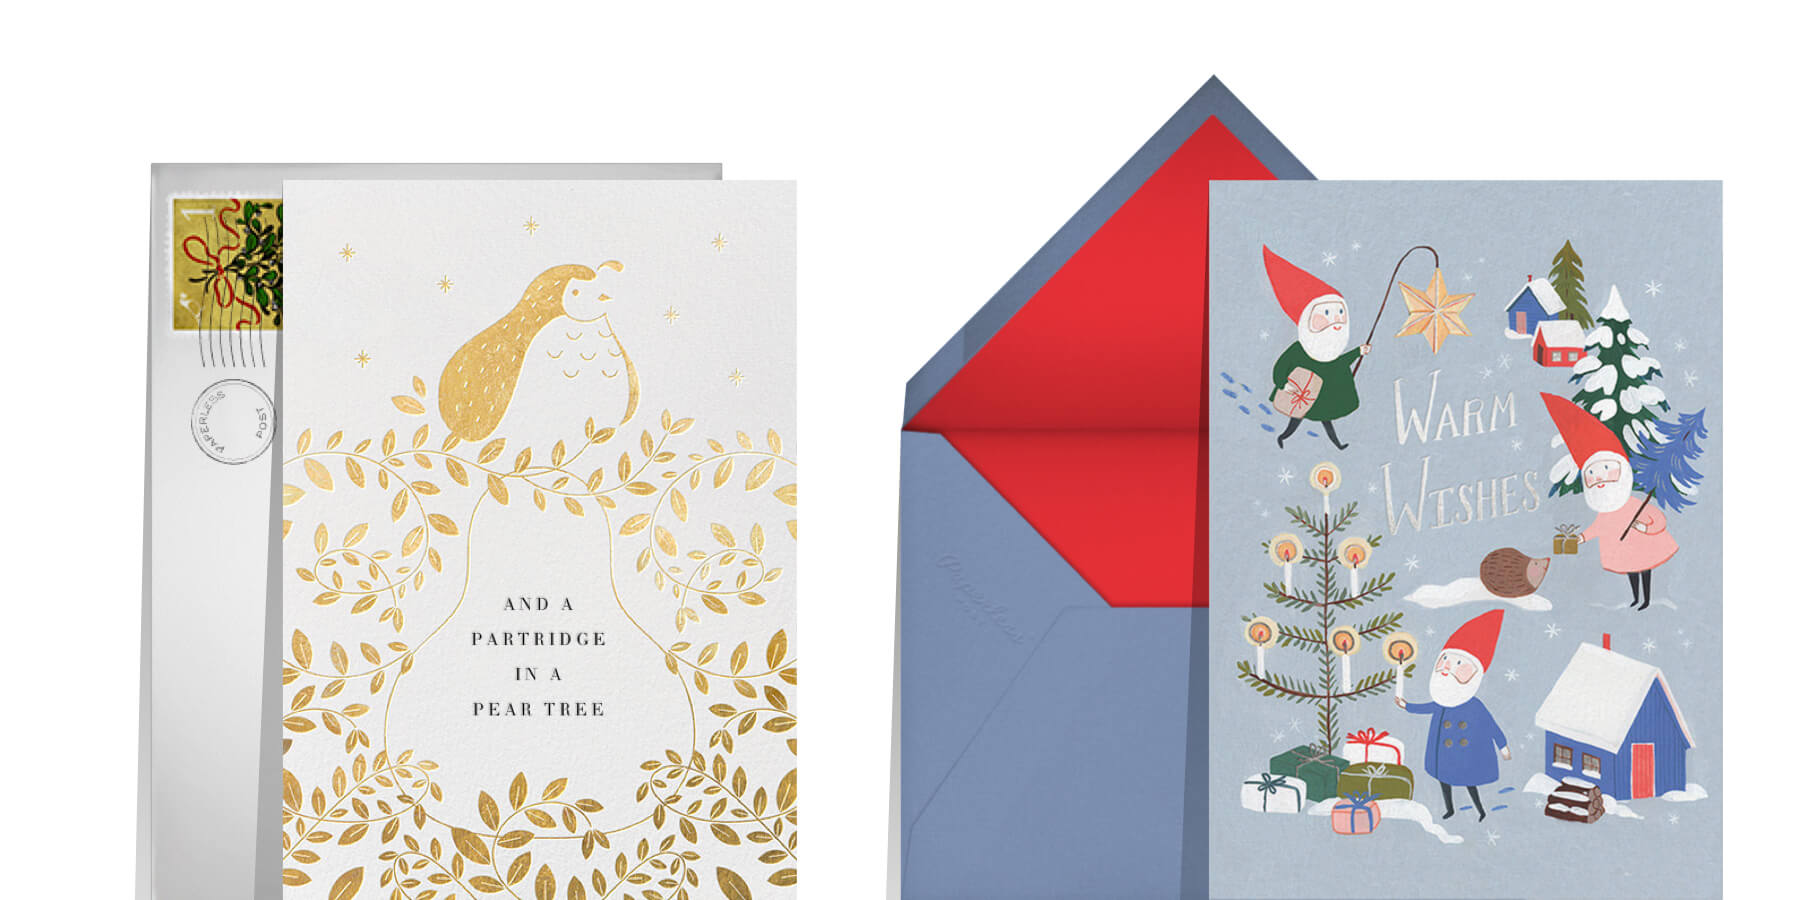 Christmas card sayings and quotes featuring two greeting cards that ready warm wishes and a partridge in a pear tree